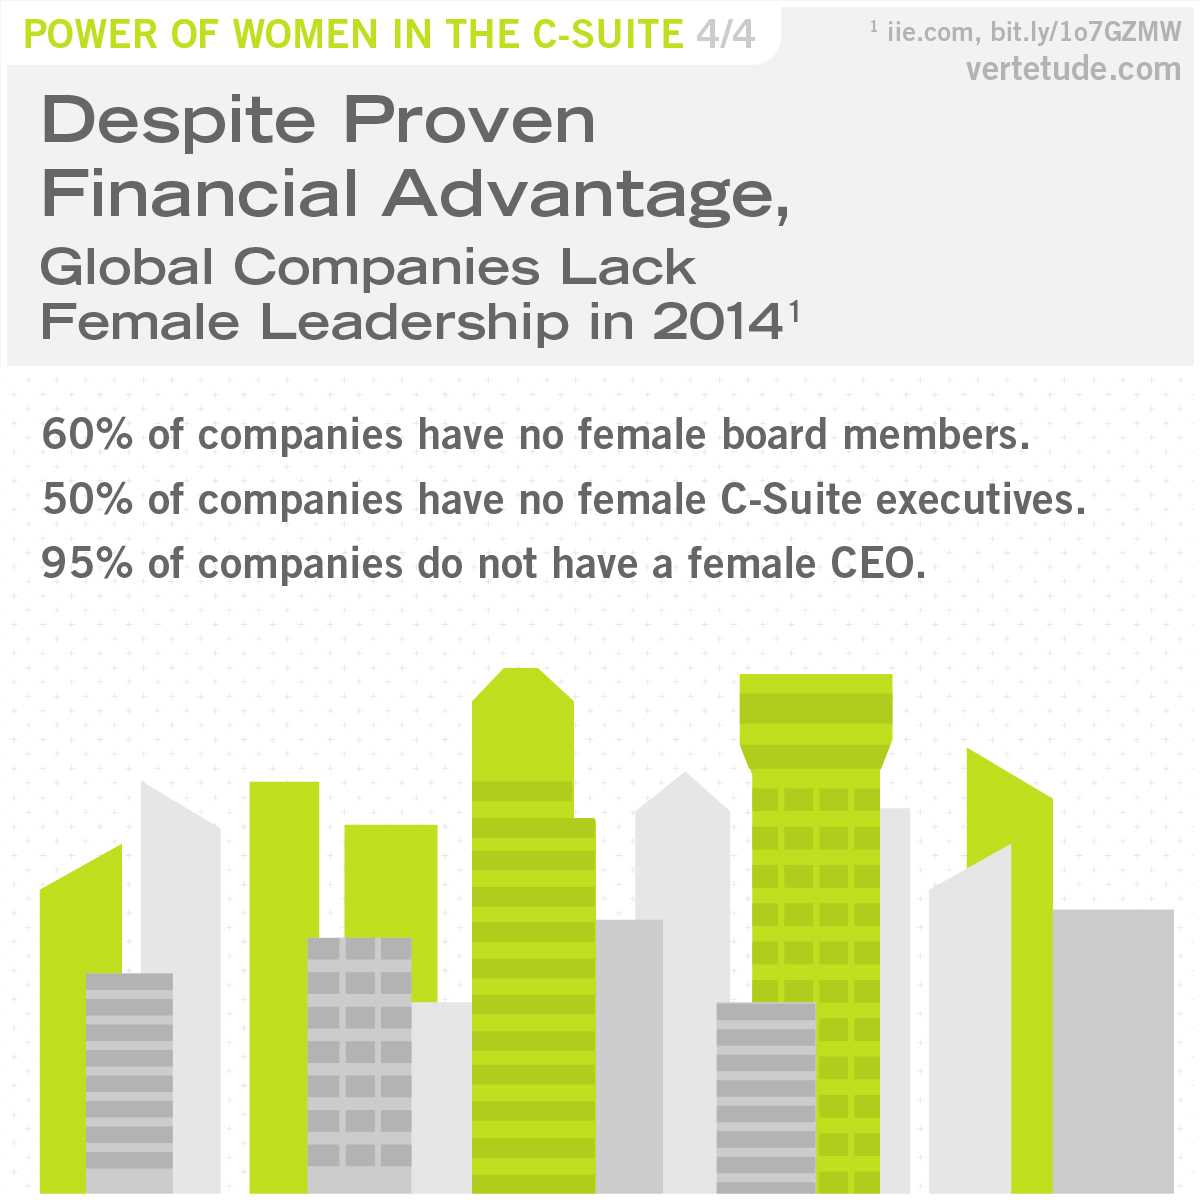 Infographic of global companies lacking female leadership